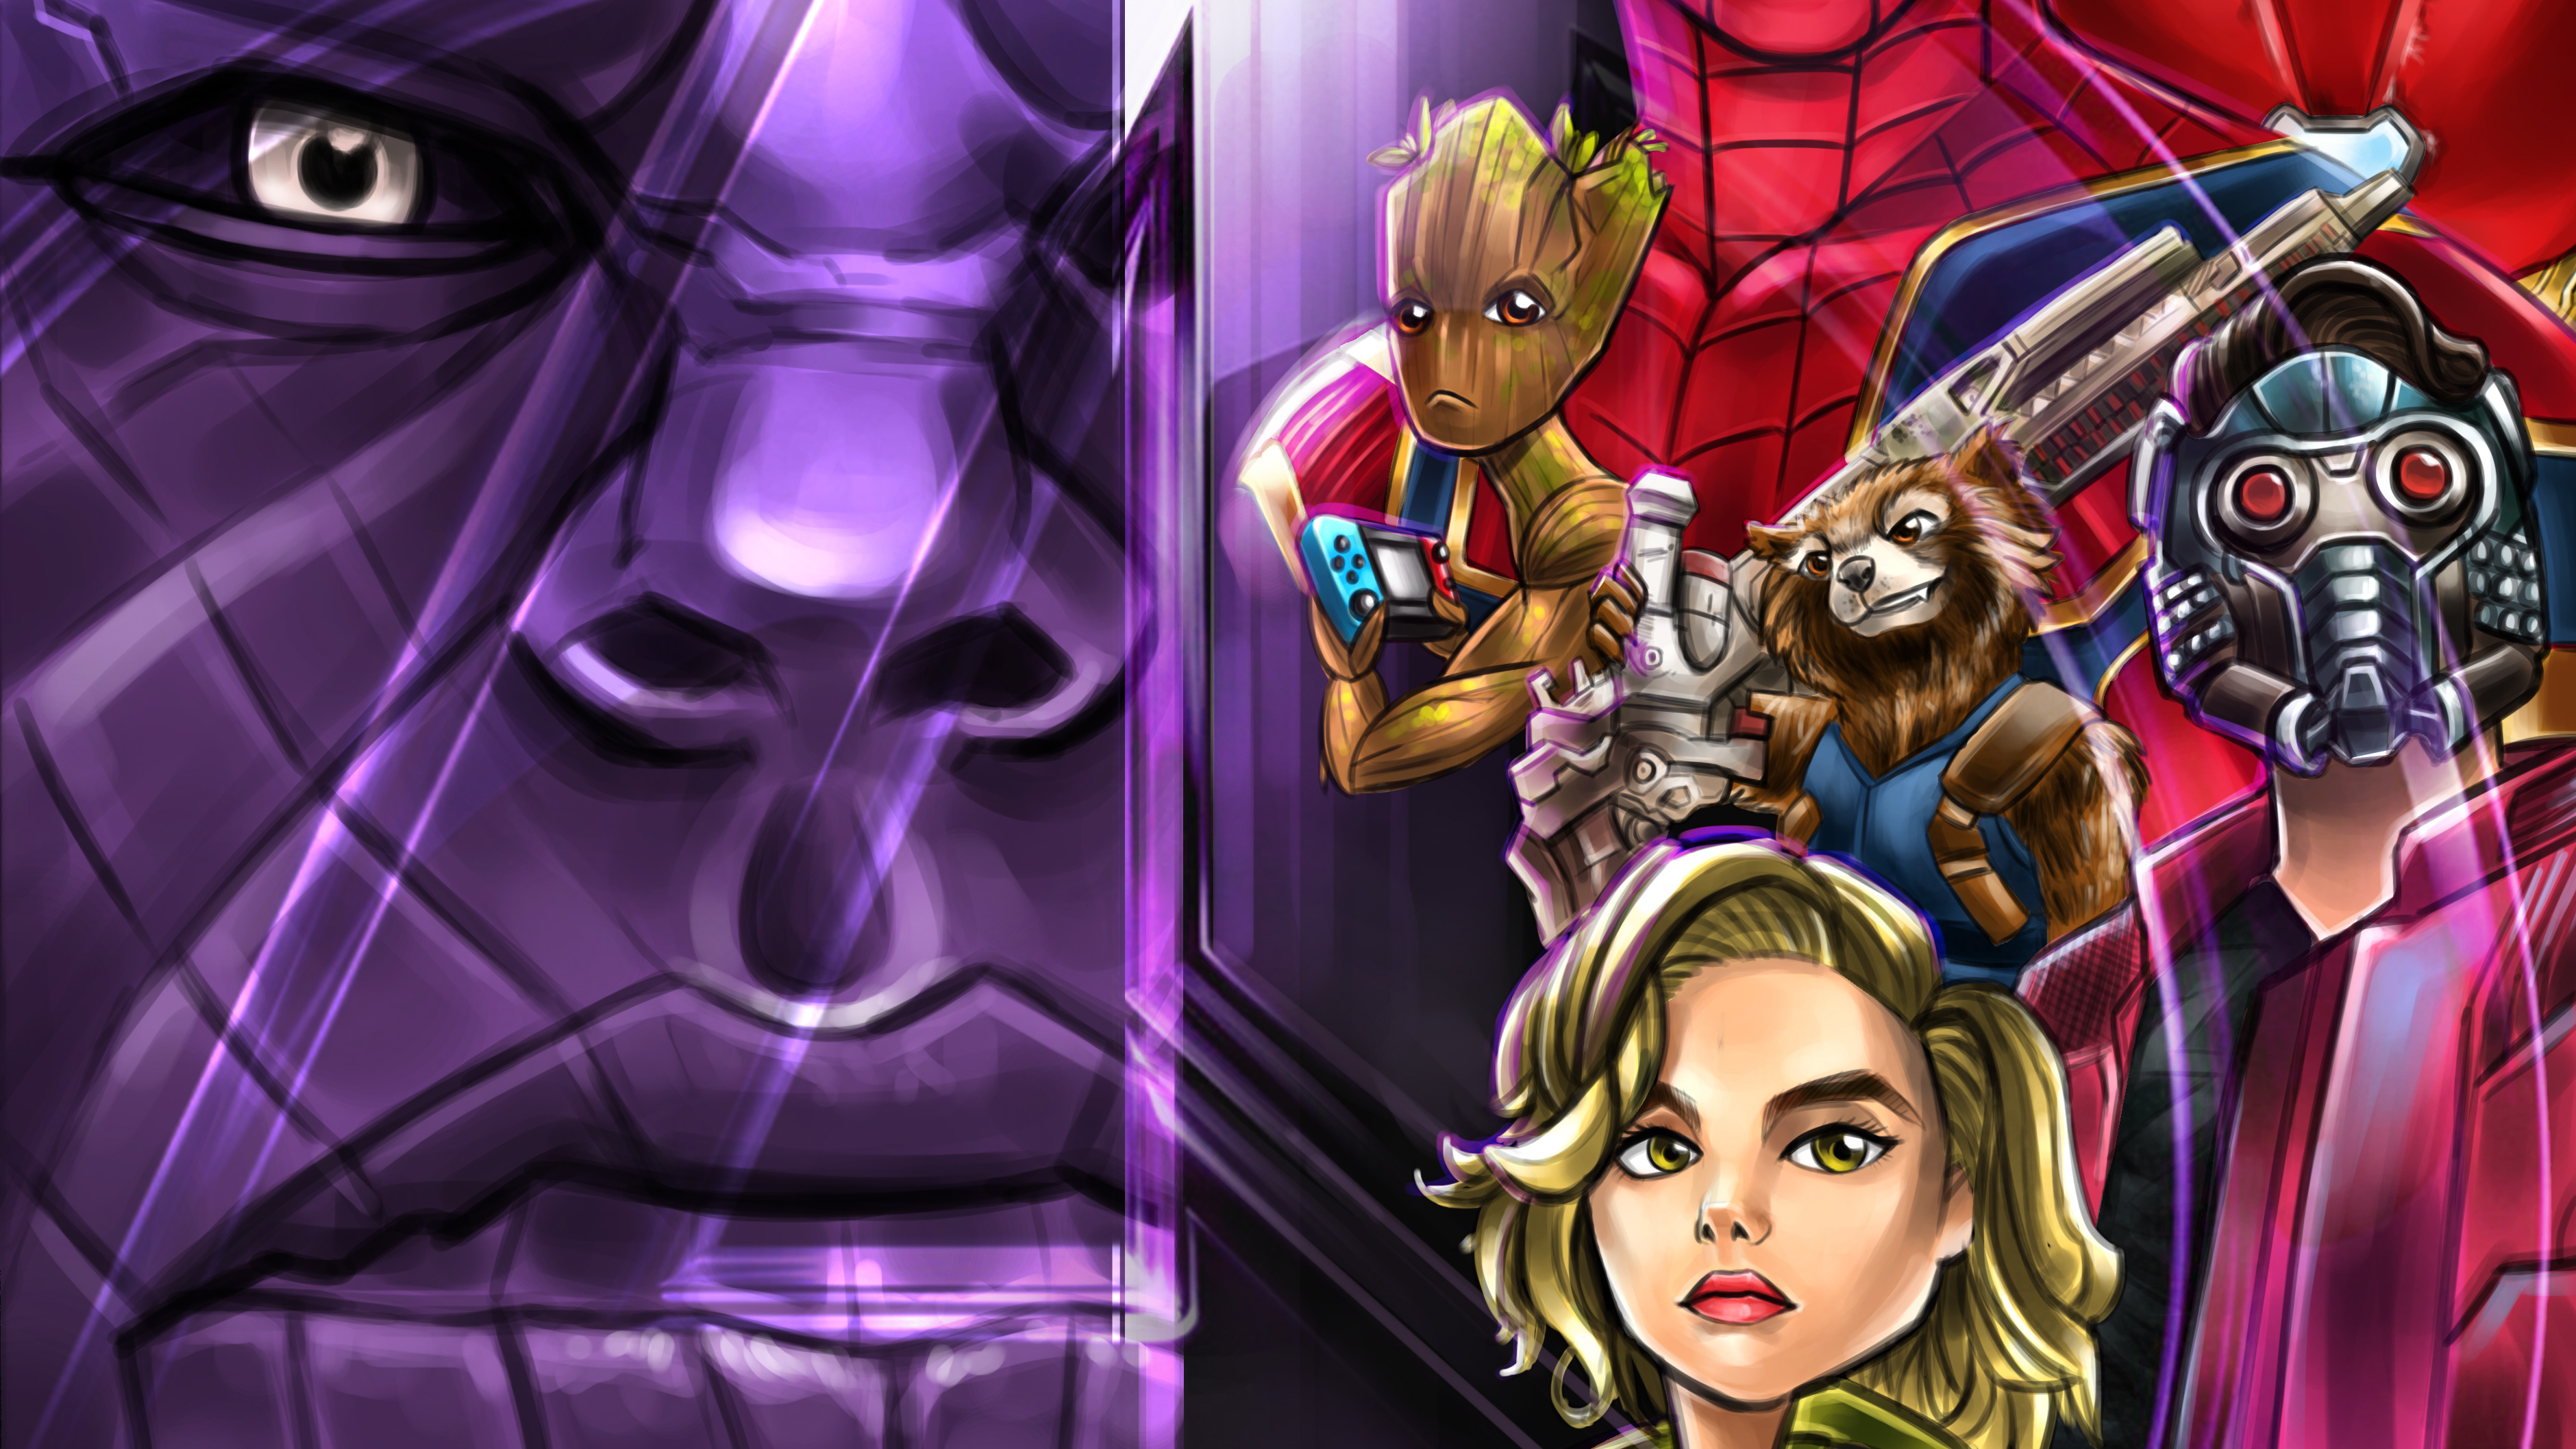 Wallpaper Artwork of characters of Guardians of the Galaxy in Avengers